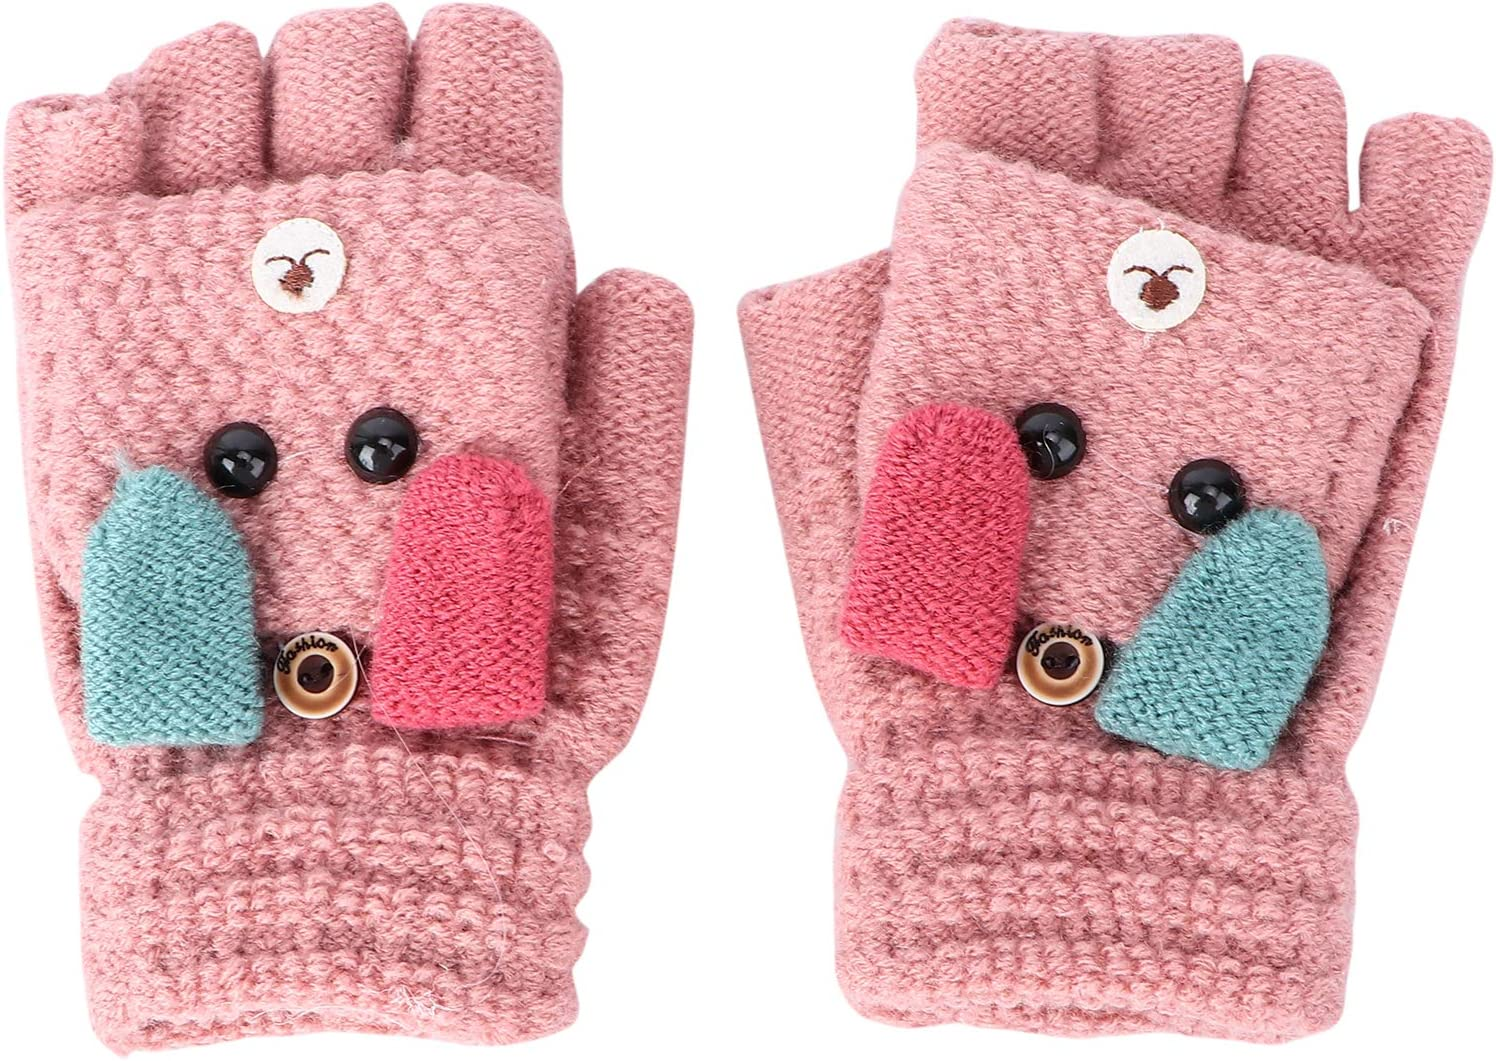 ABOOFAN 1 Pair Knitted Half- Finger Gloves Cartoon Puppy Clamshell Mitten Warm Mitts Party Favors